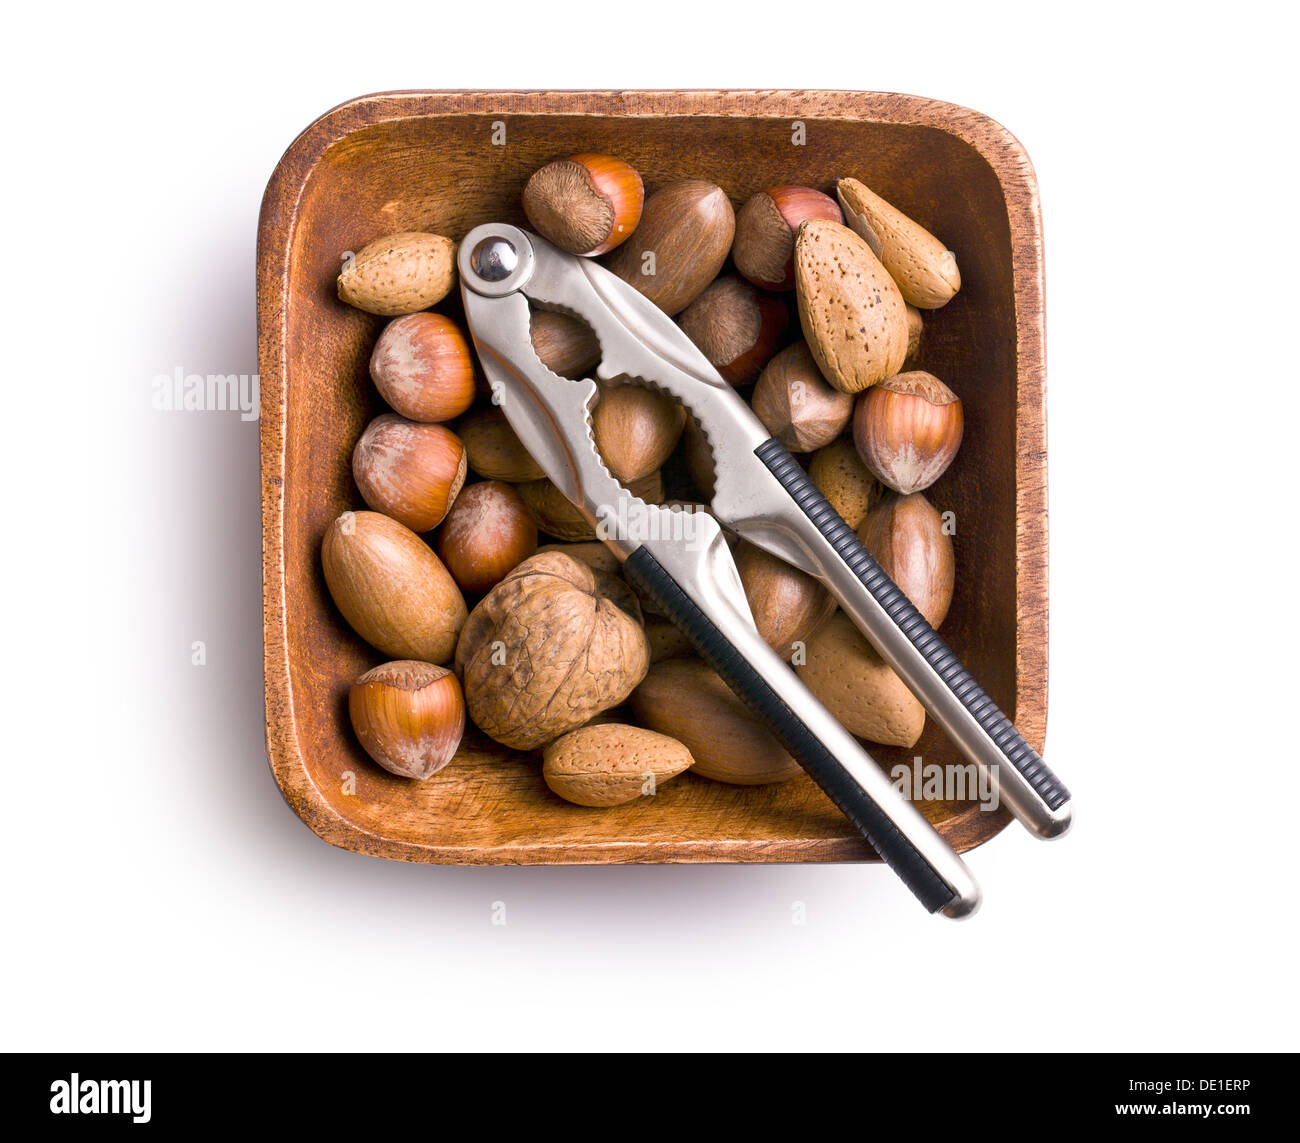 various unpeeled nuts in wooden bowl - Stock Image